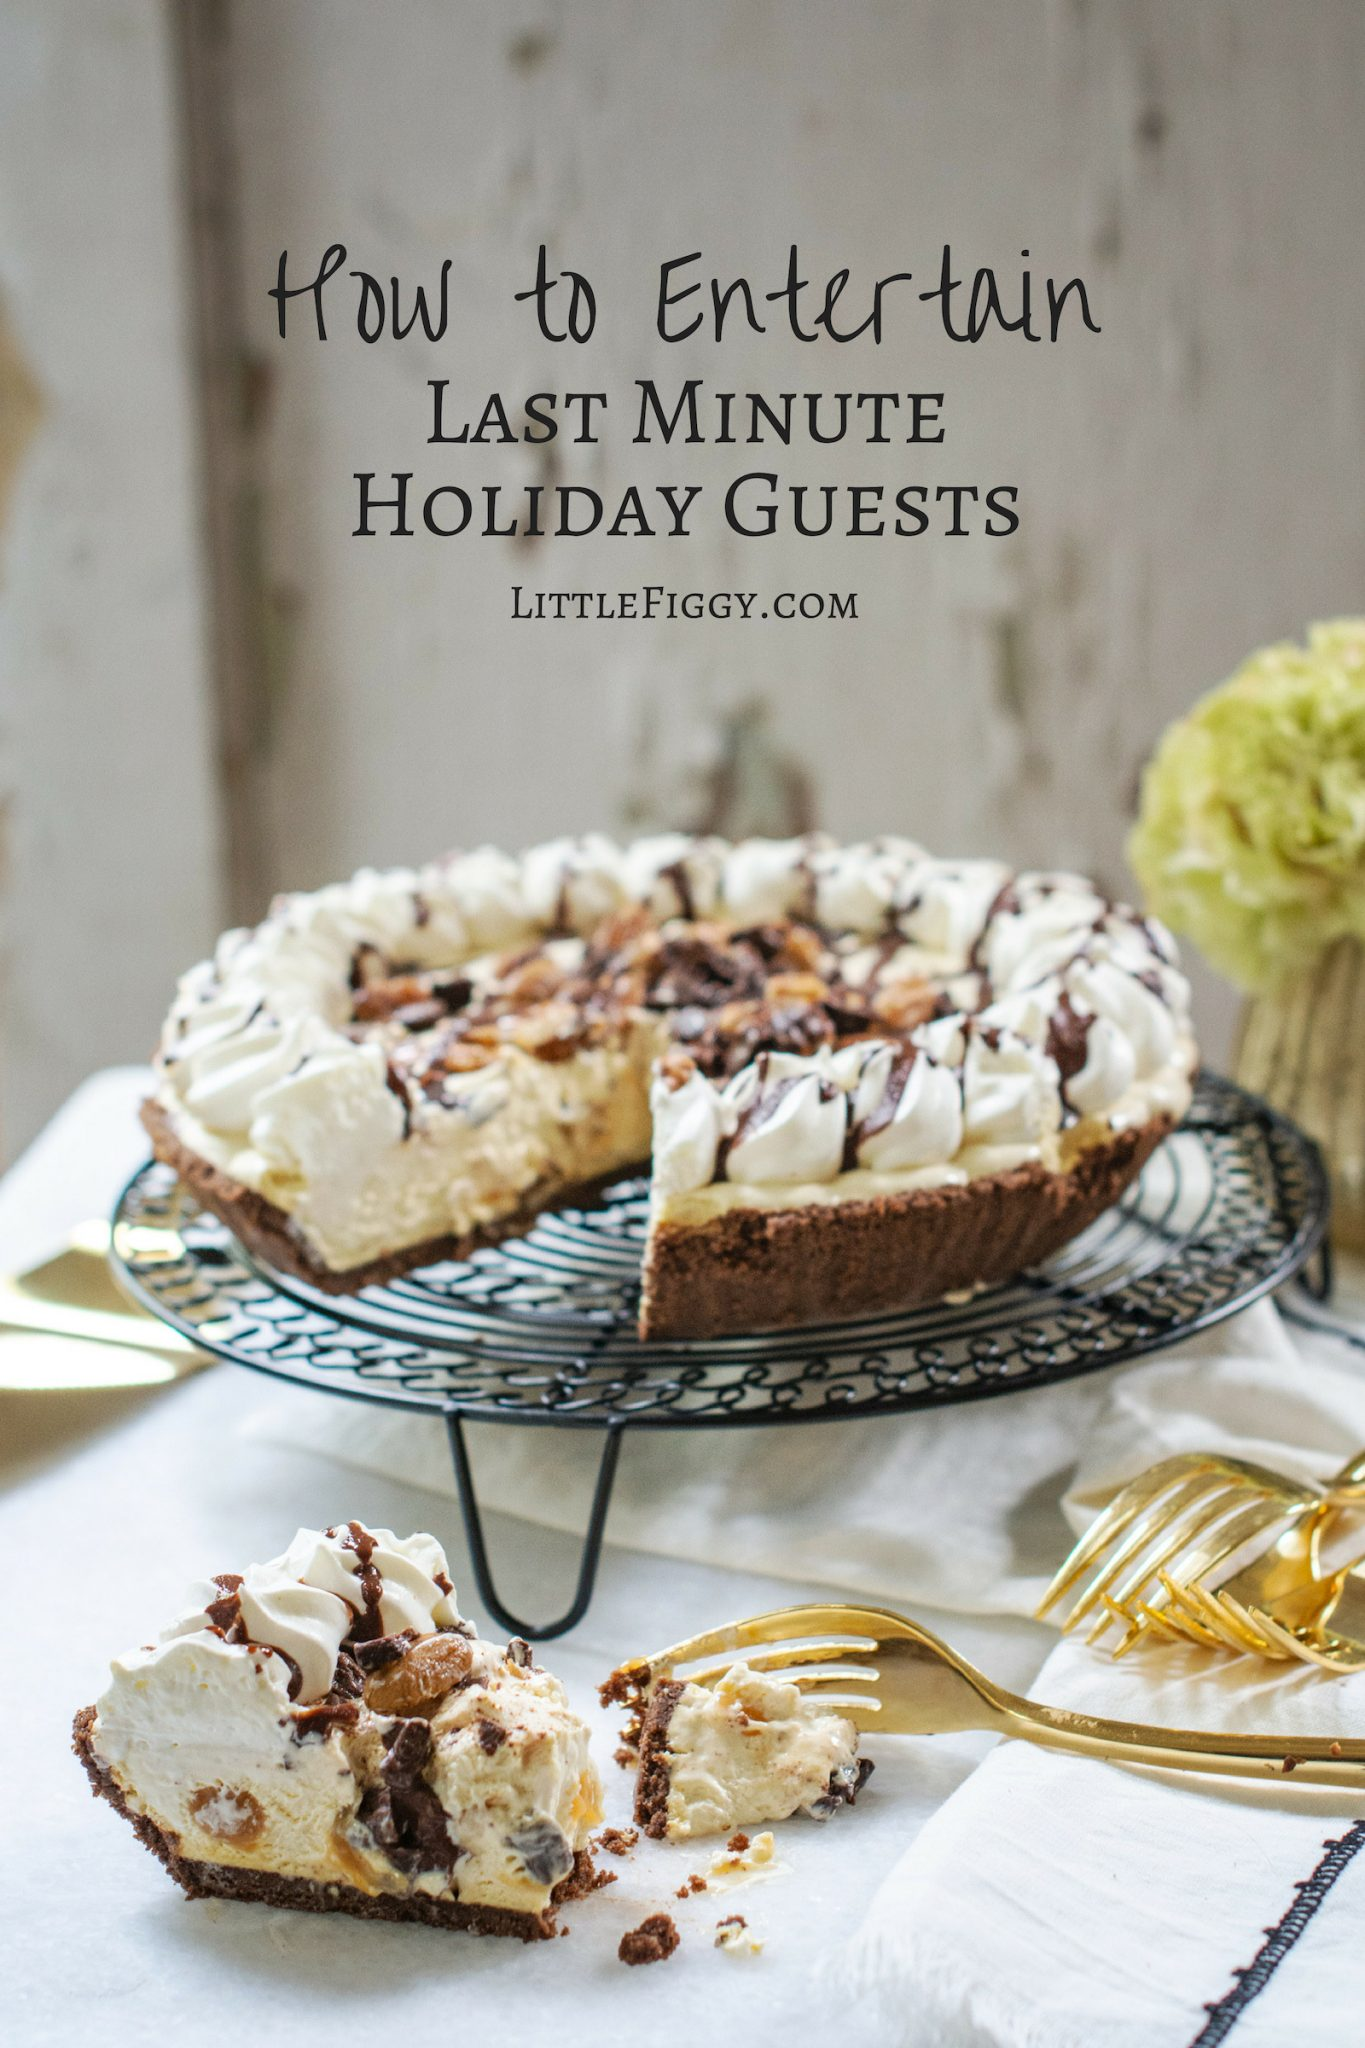 How to entertain last minute guests with Edwards Desserts